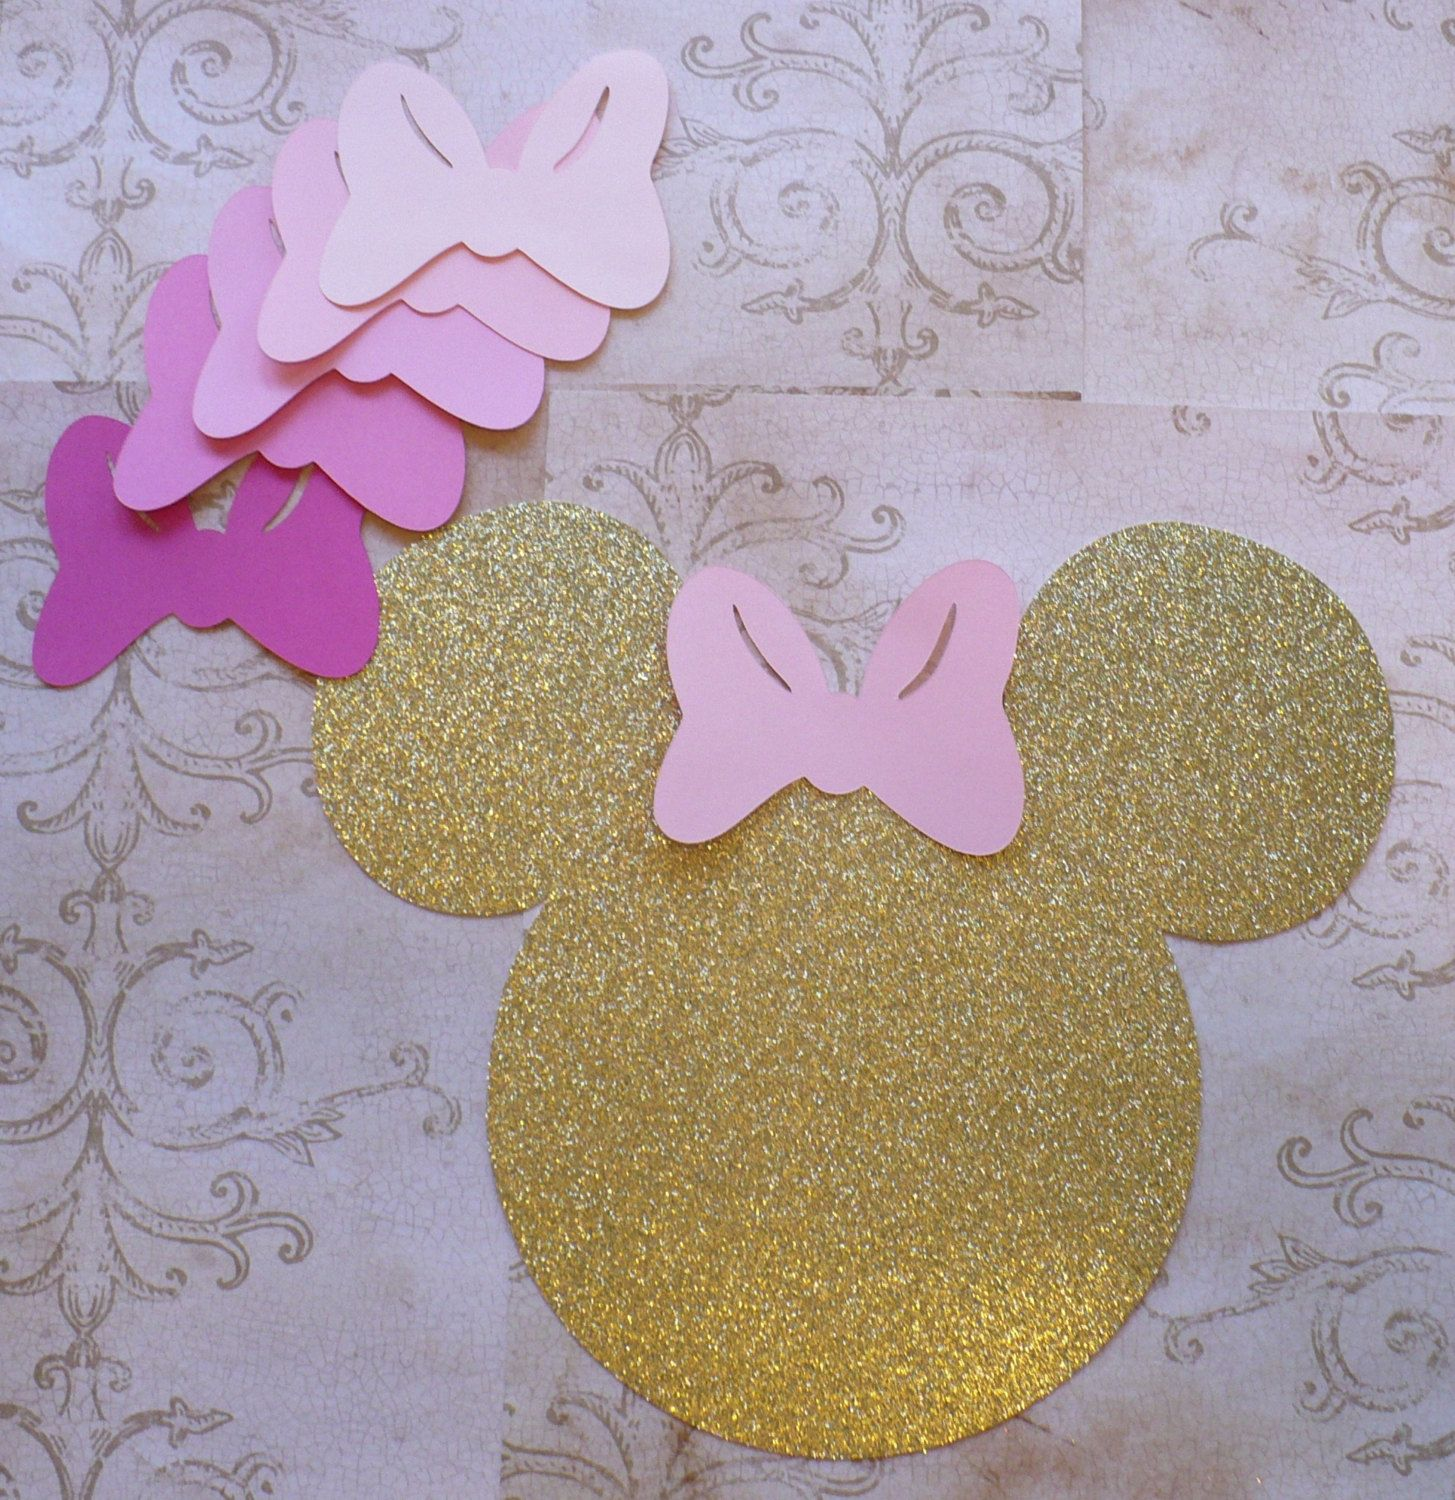 Made Using Glitter Cardstock By The Paper Studio Hobby